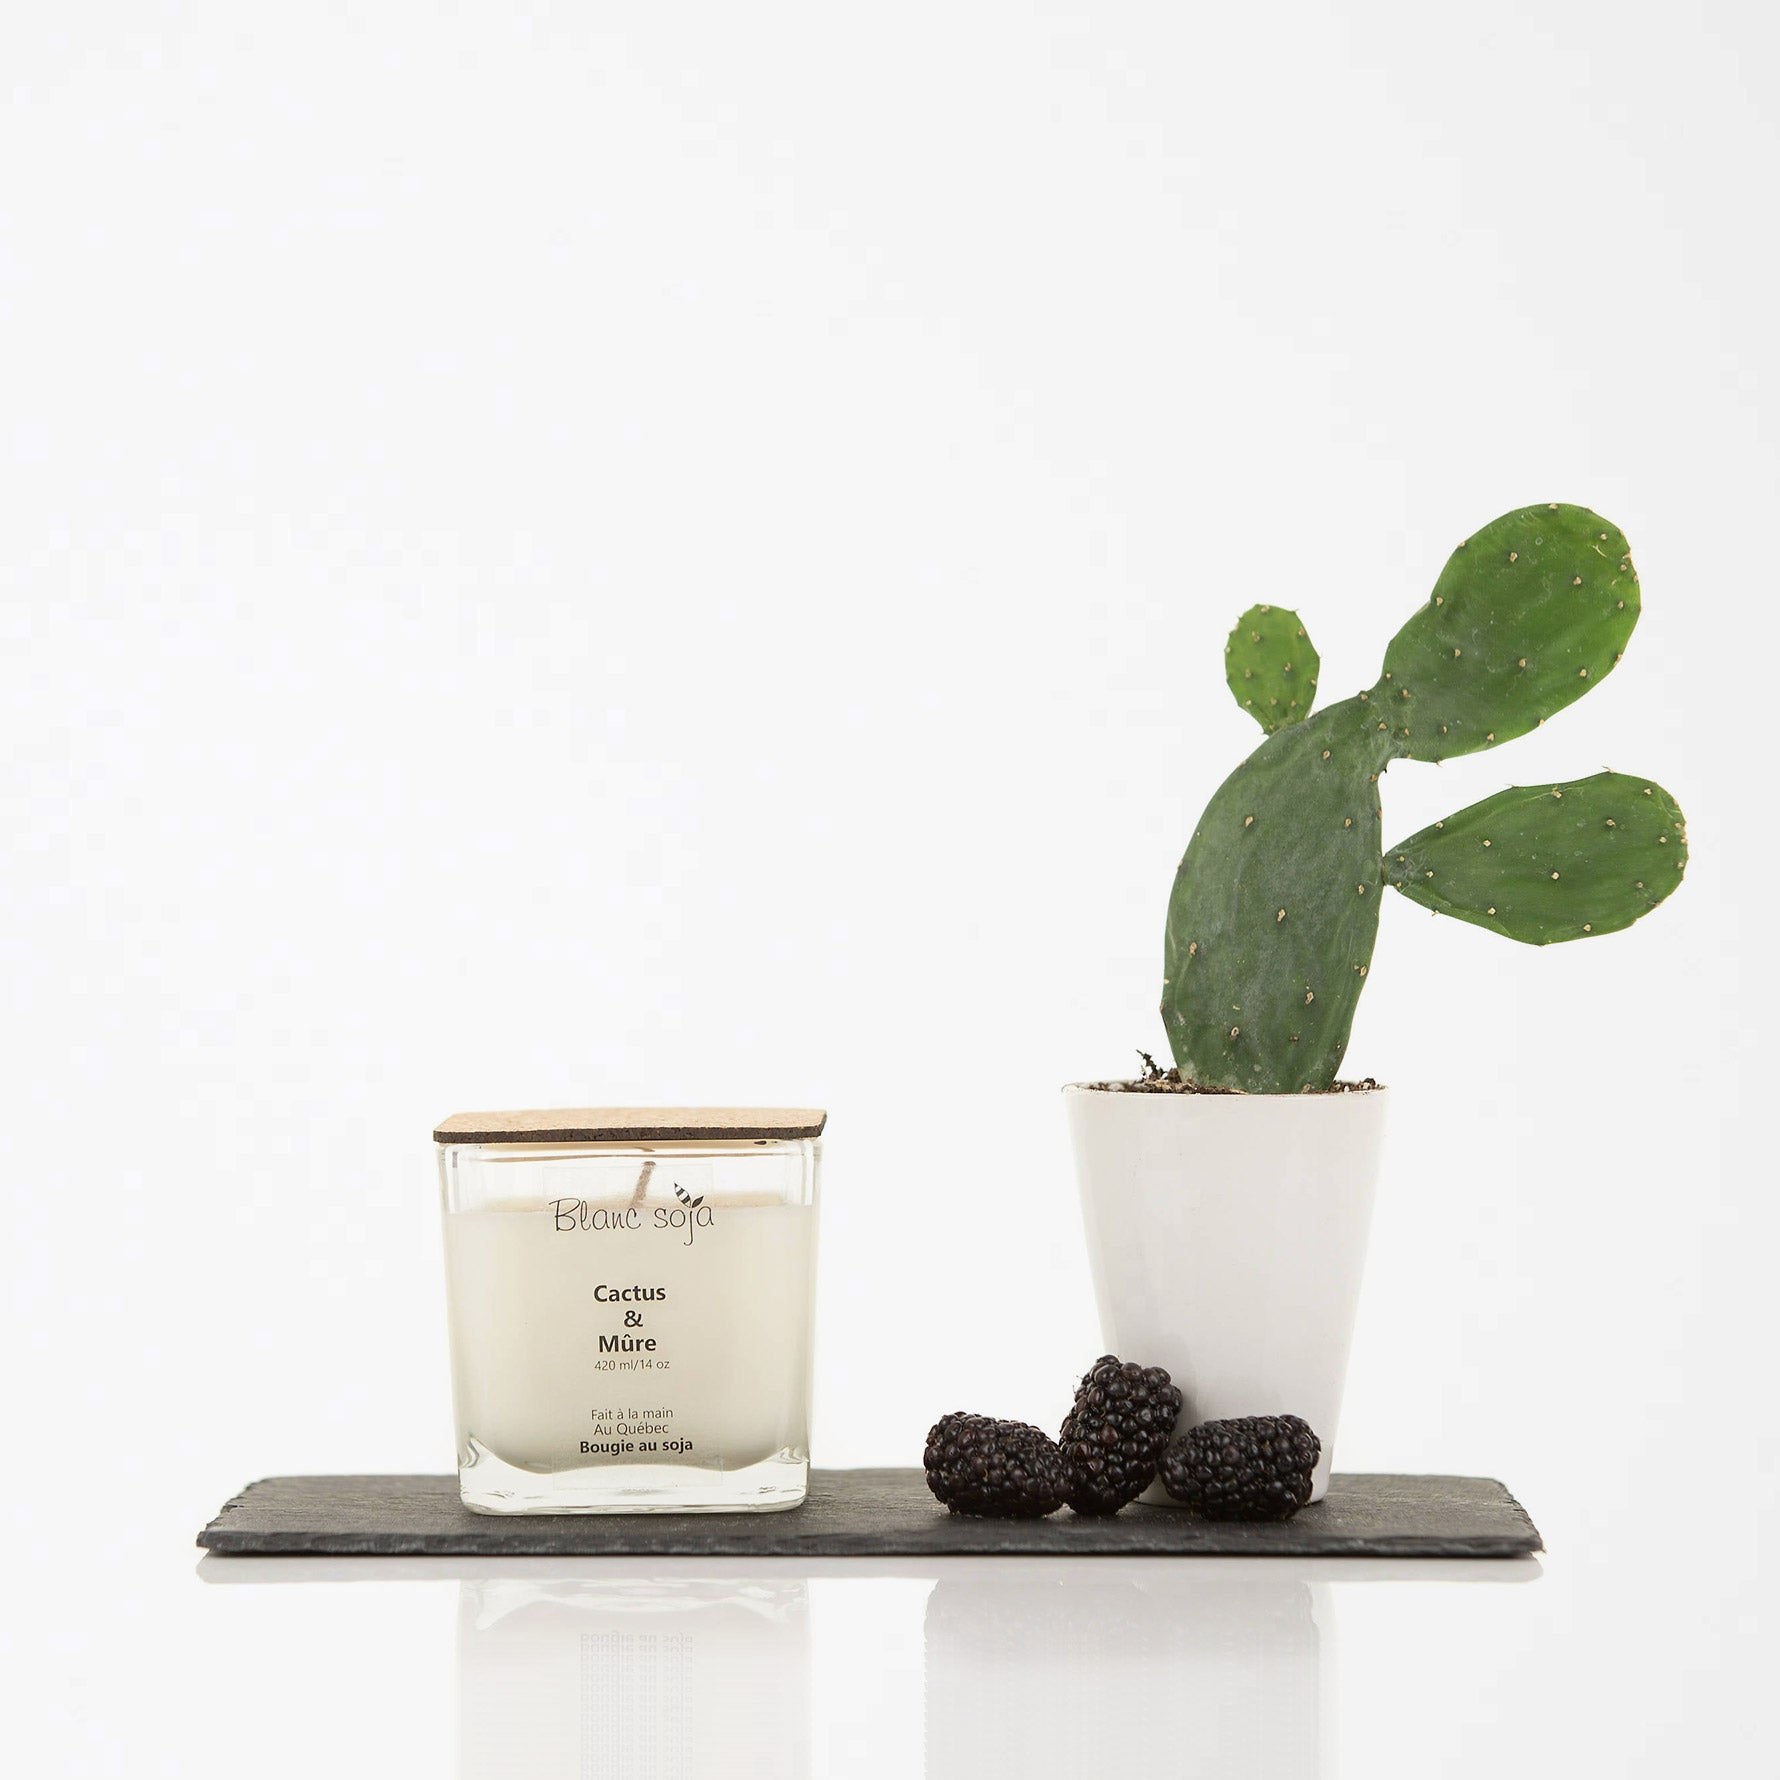 Cactus & Blackberry - Soy Candle - 60 Hours - 420 ml / 14 oz. - Sold by Chic & Basta